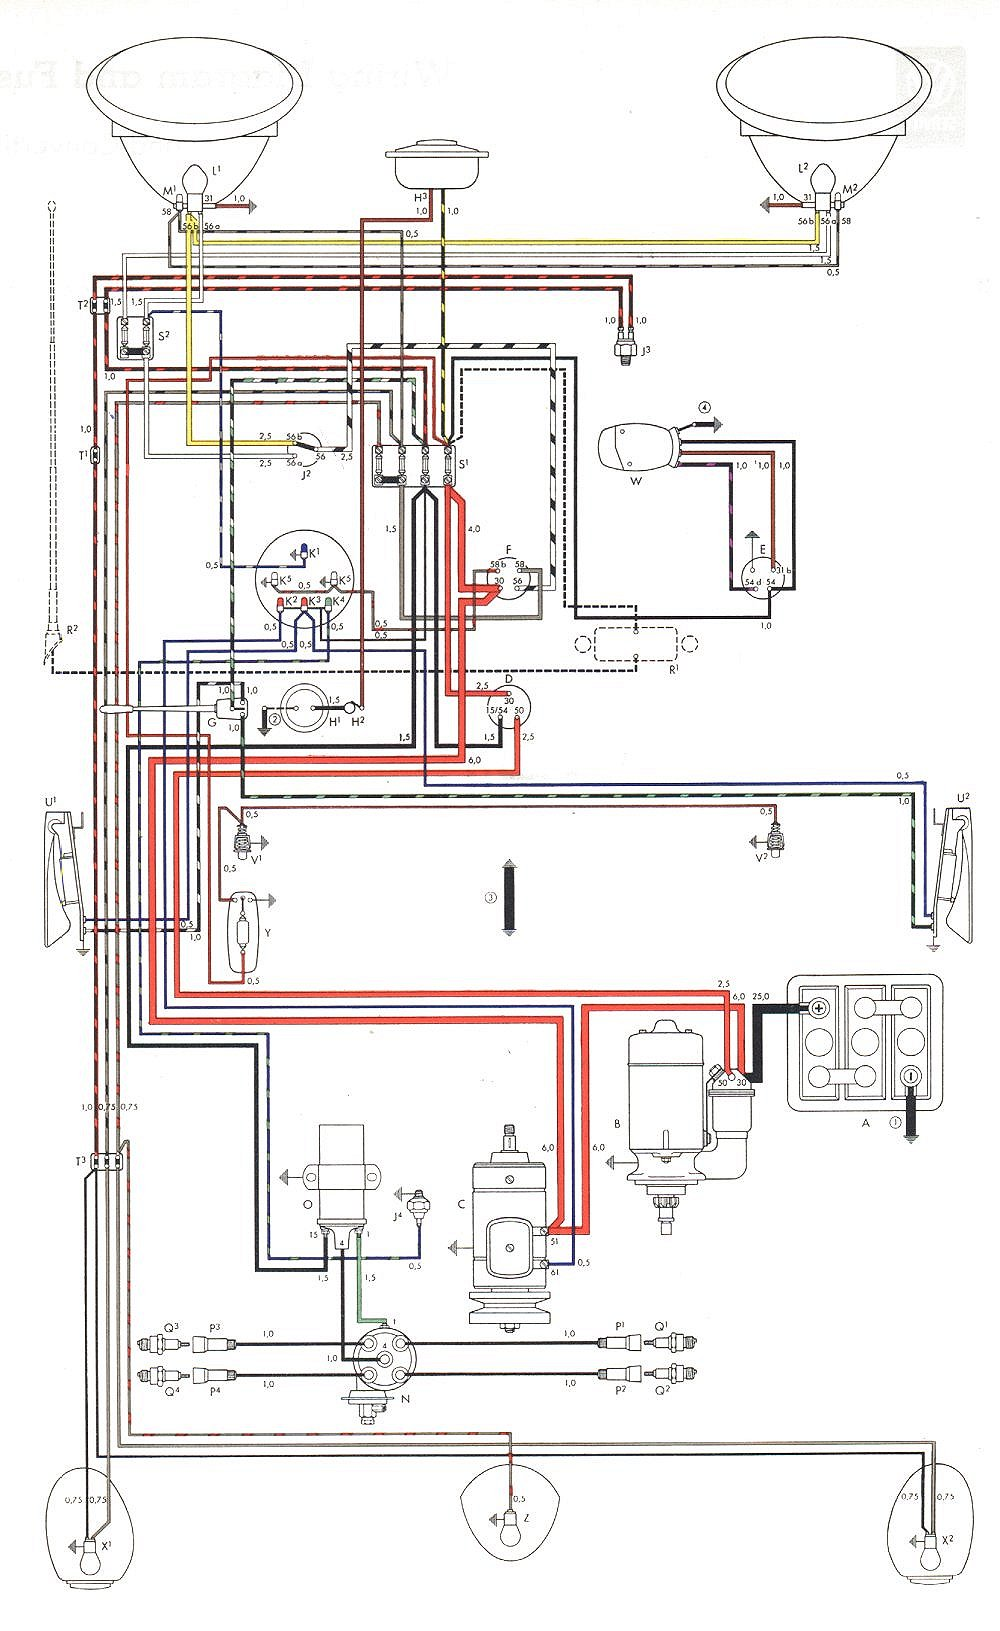 vw beetle wiring diagram RQJzFNj 05 vw bug headlight wire harness 05 wiring diagrams collection Wiring Harness Diagram at eliteediting.co